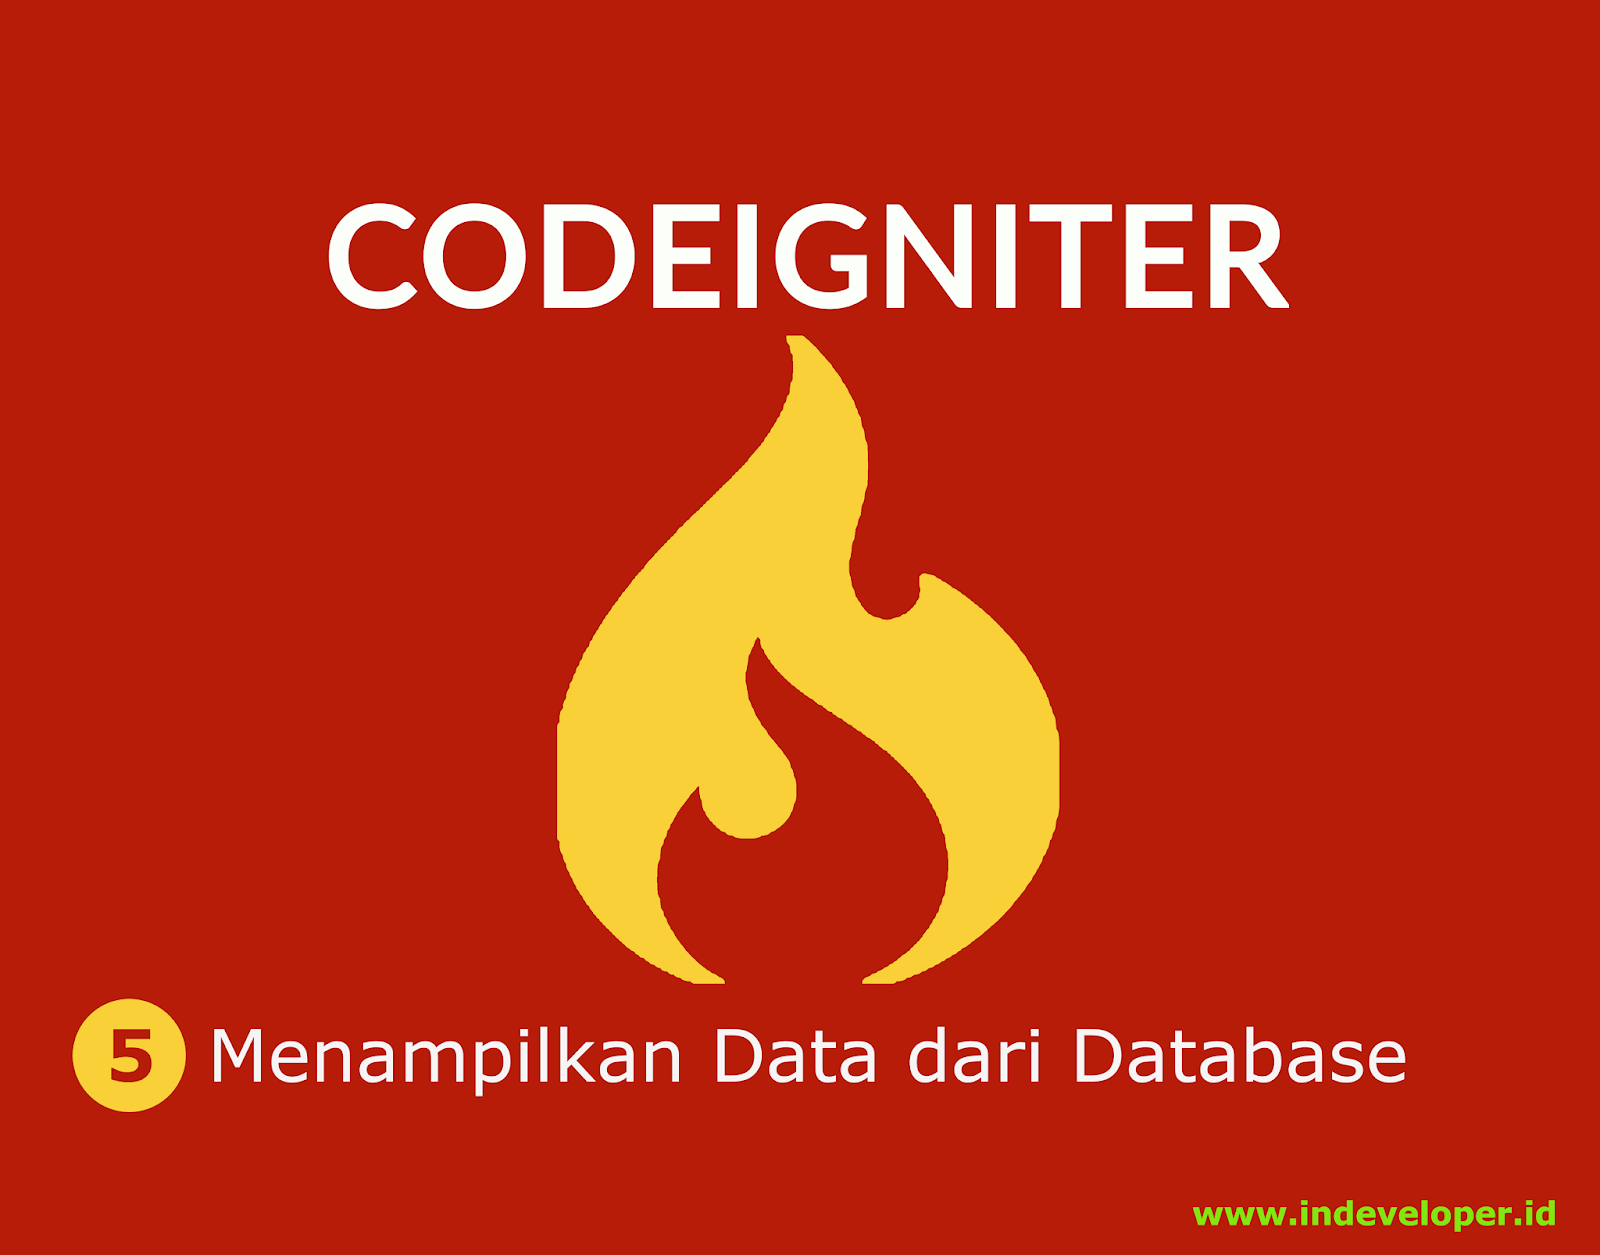 Tutorial Codeigniter Cara Menampilkan Data Dari Database 5